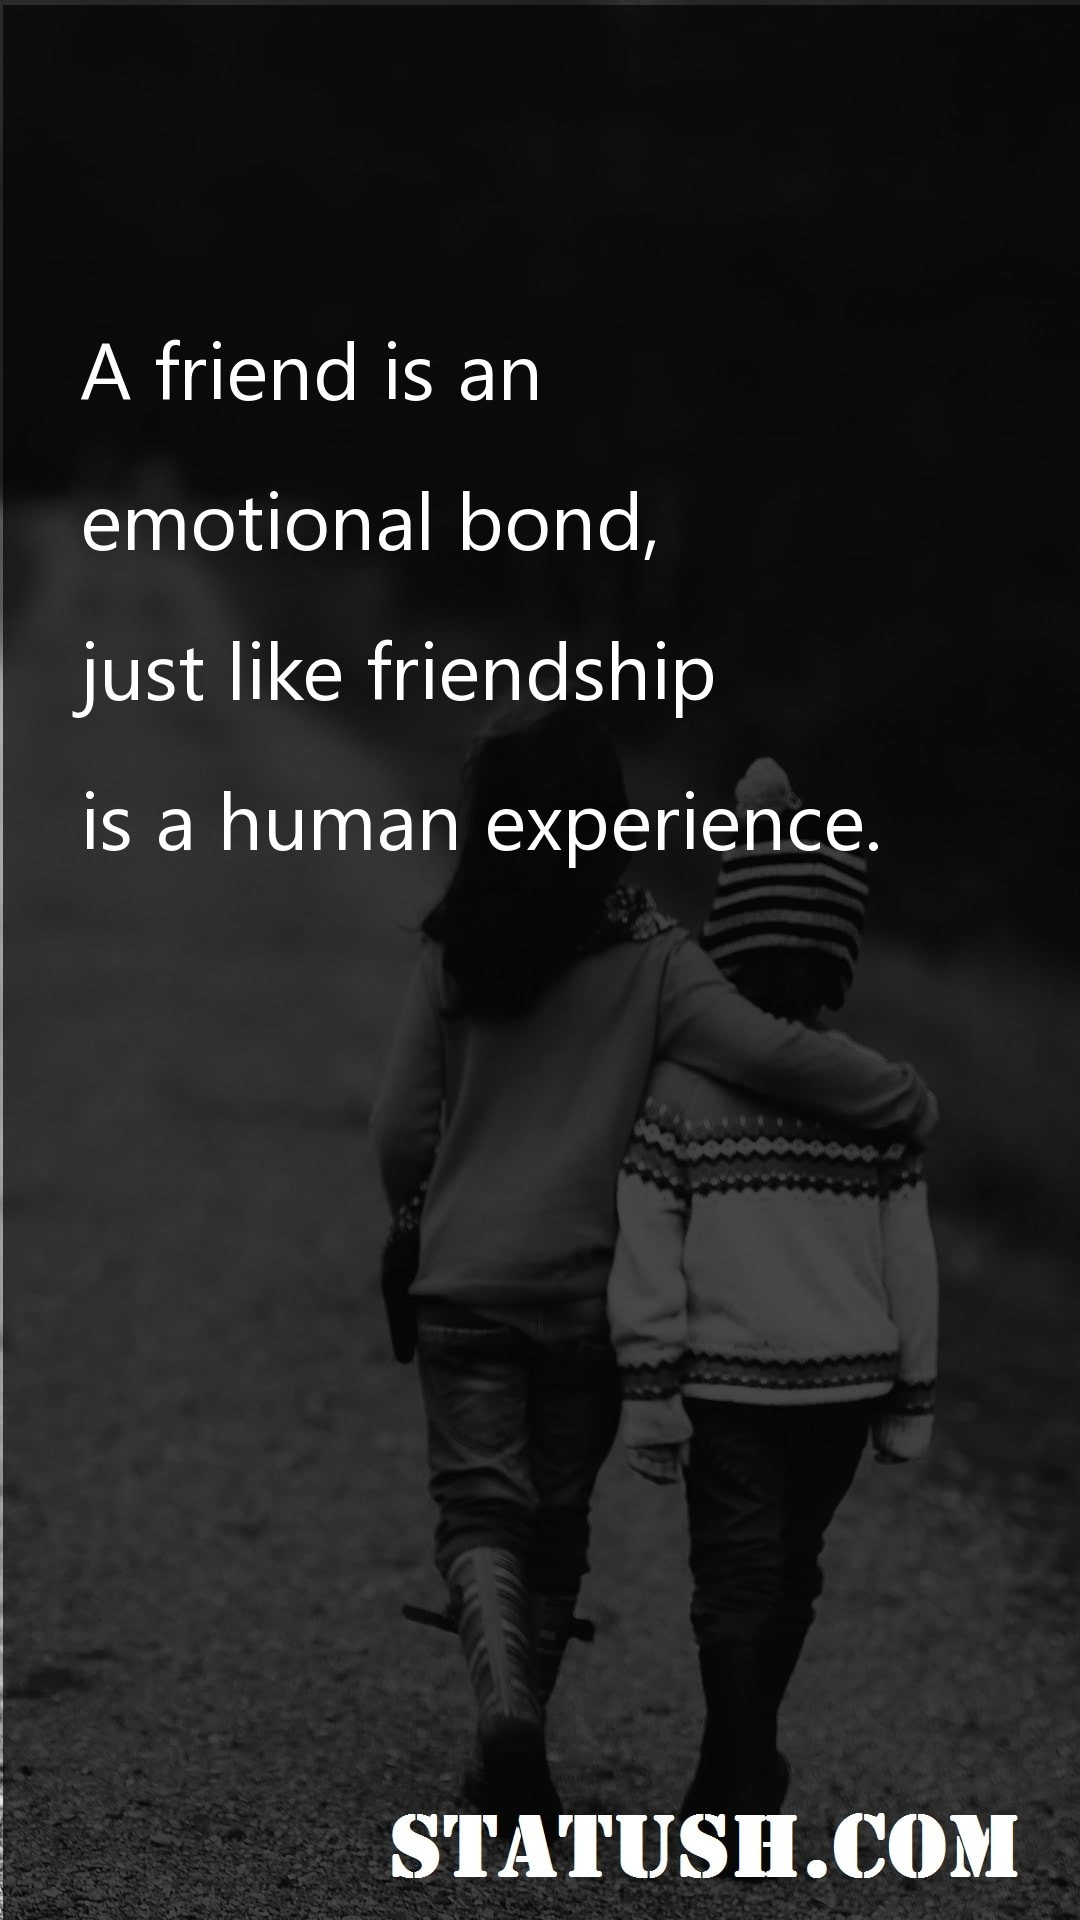 A friend is an emotional bond